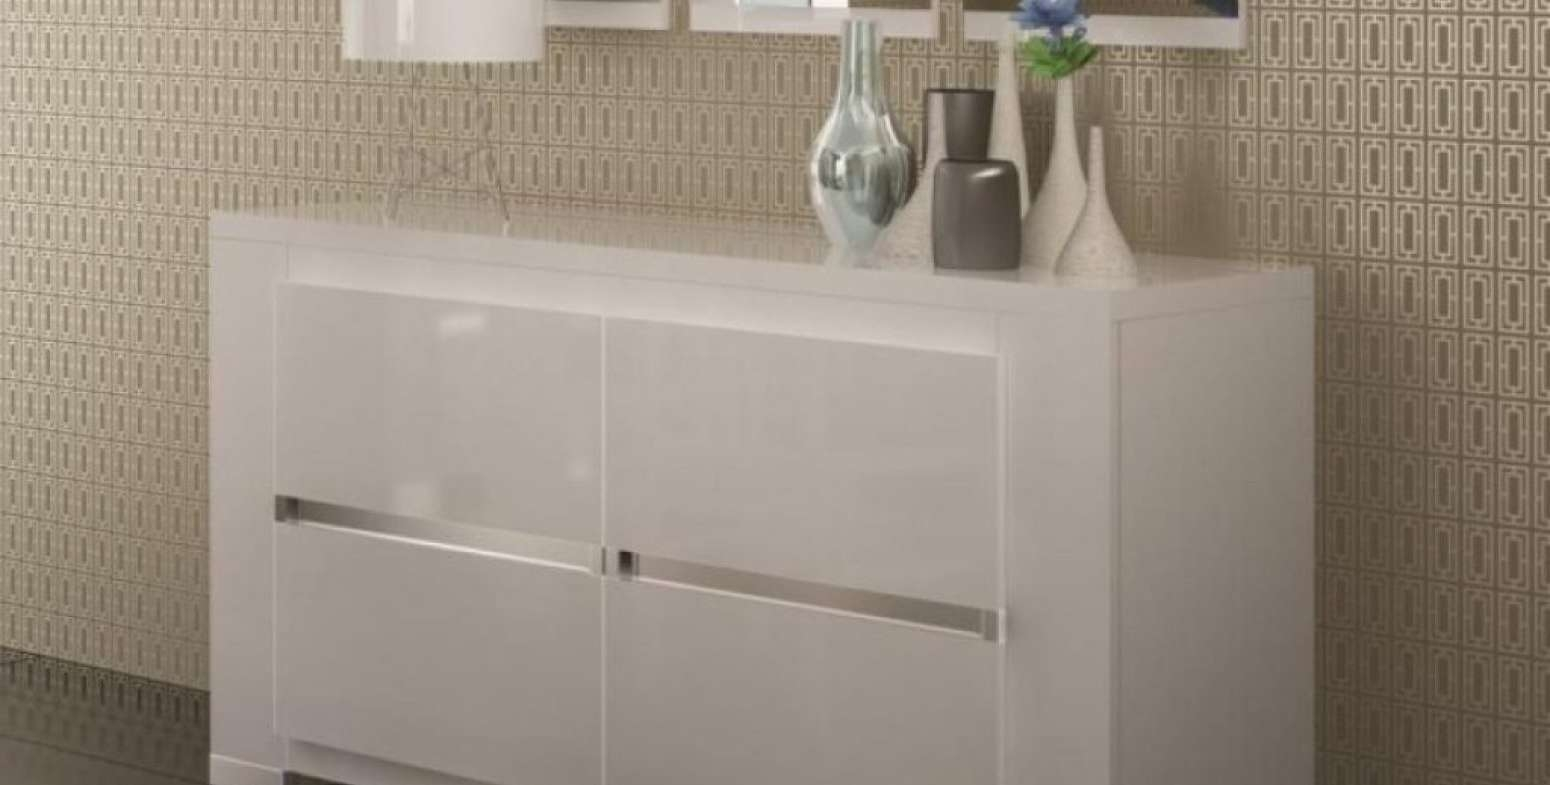 Sideboard : Sideboards Cheap Contemporary Cheap Sideboards For For Cheap Sideboards (View 17 of 20)